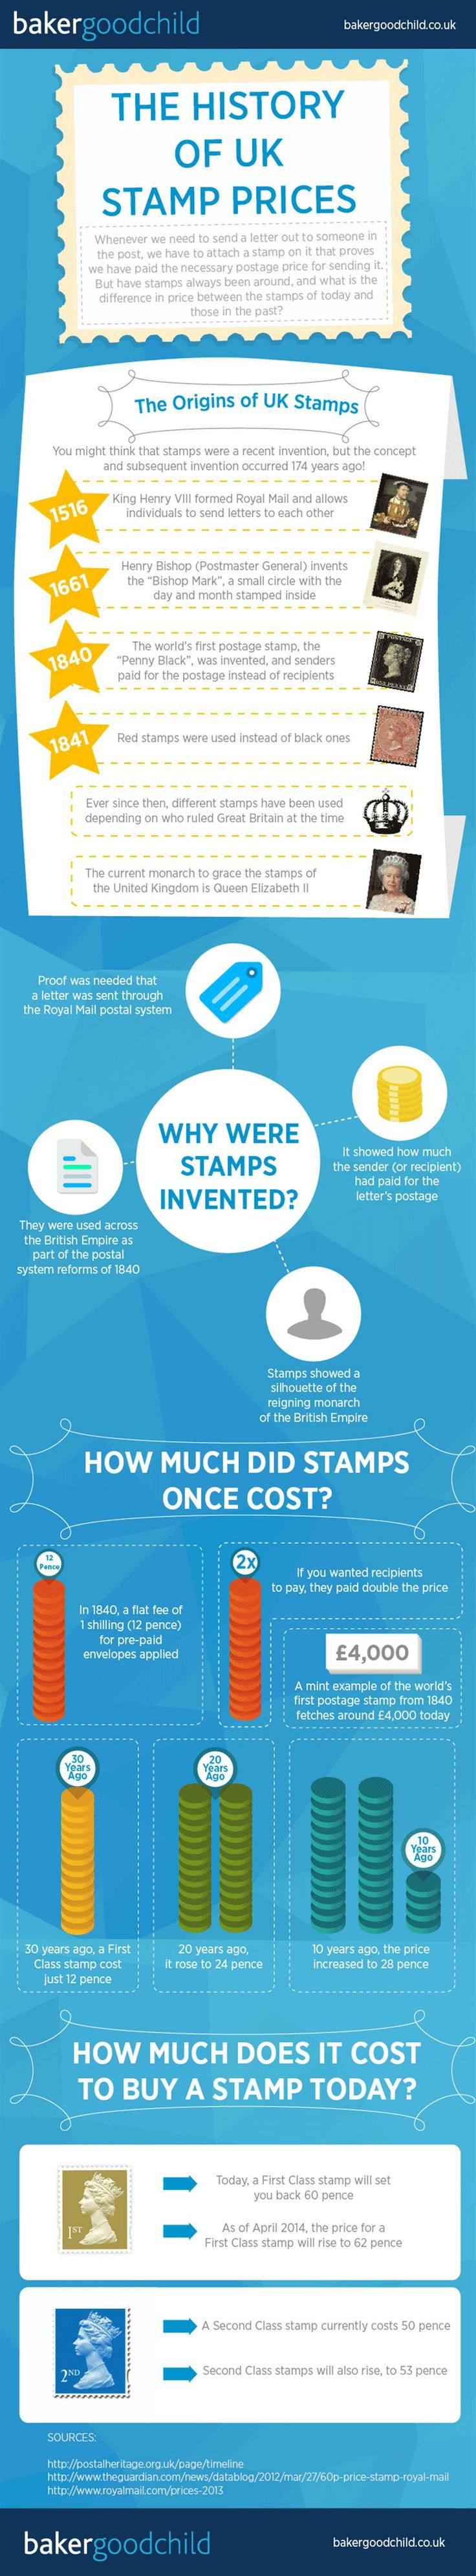 The History Of UK Stamp Prices  #infographic #stamps #history